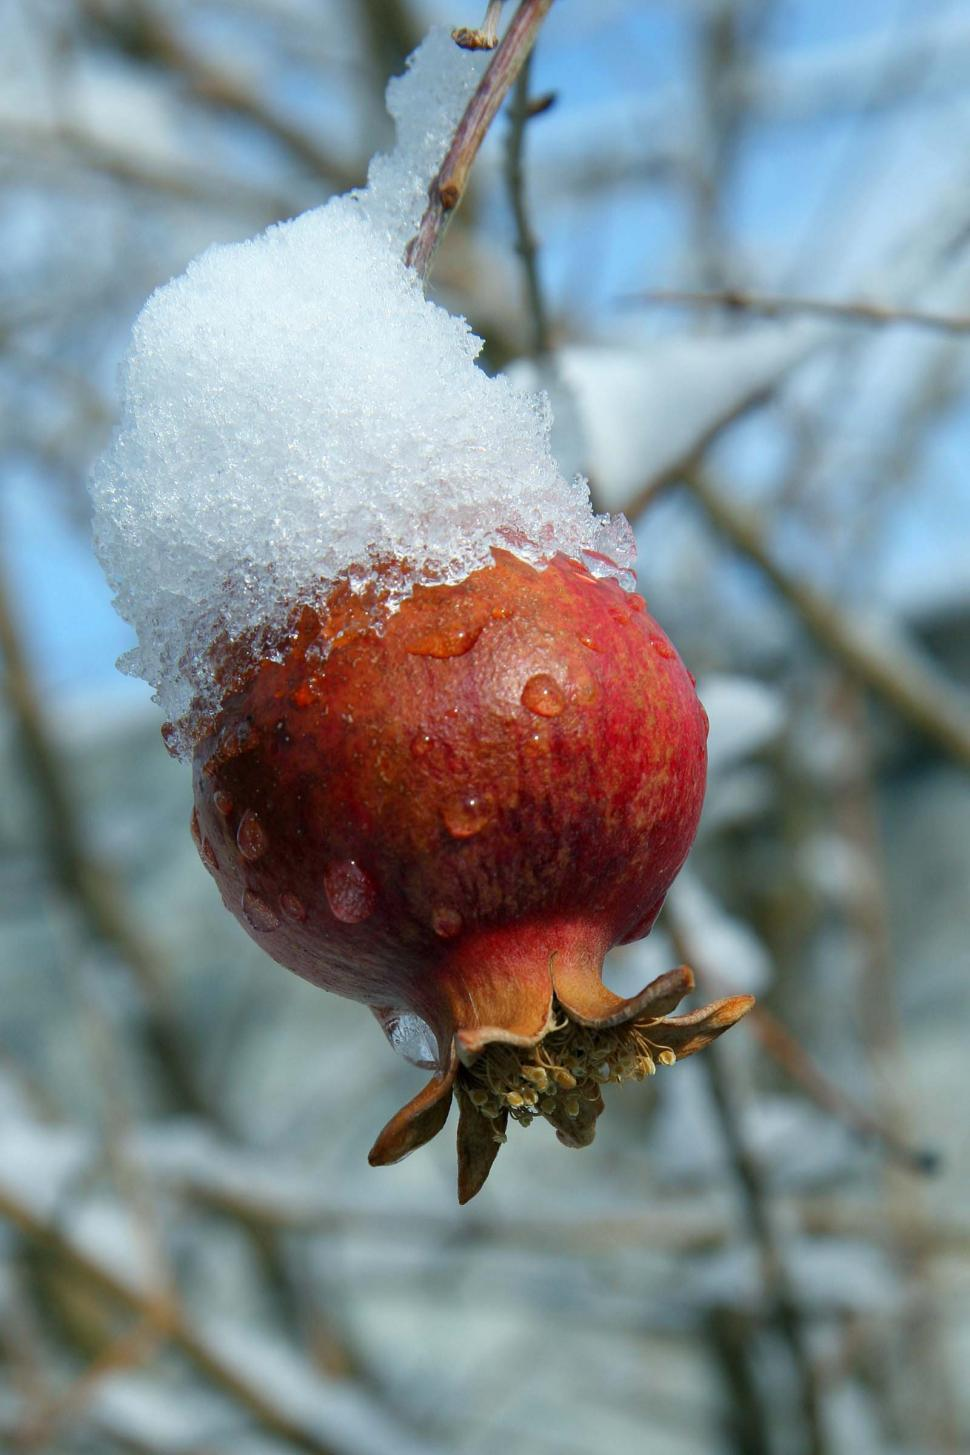 Download Free Stock HD Photo of Pomegranate fruit with snow Online